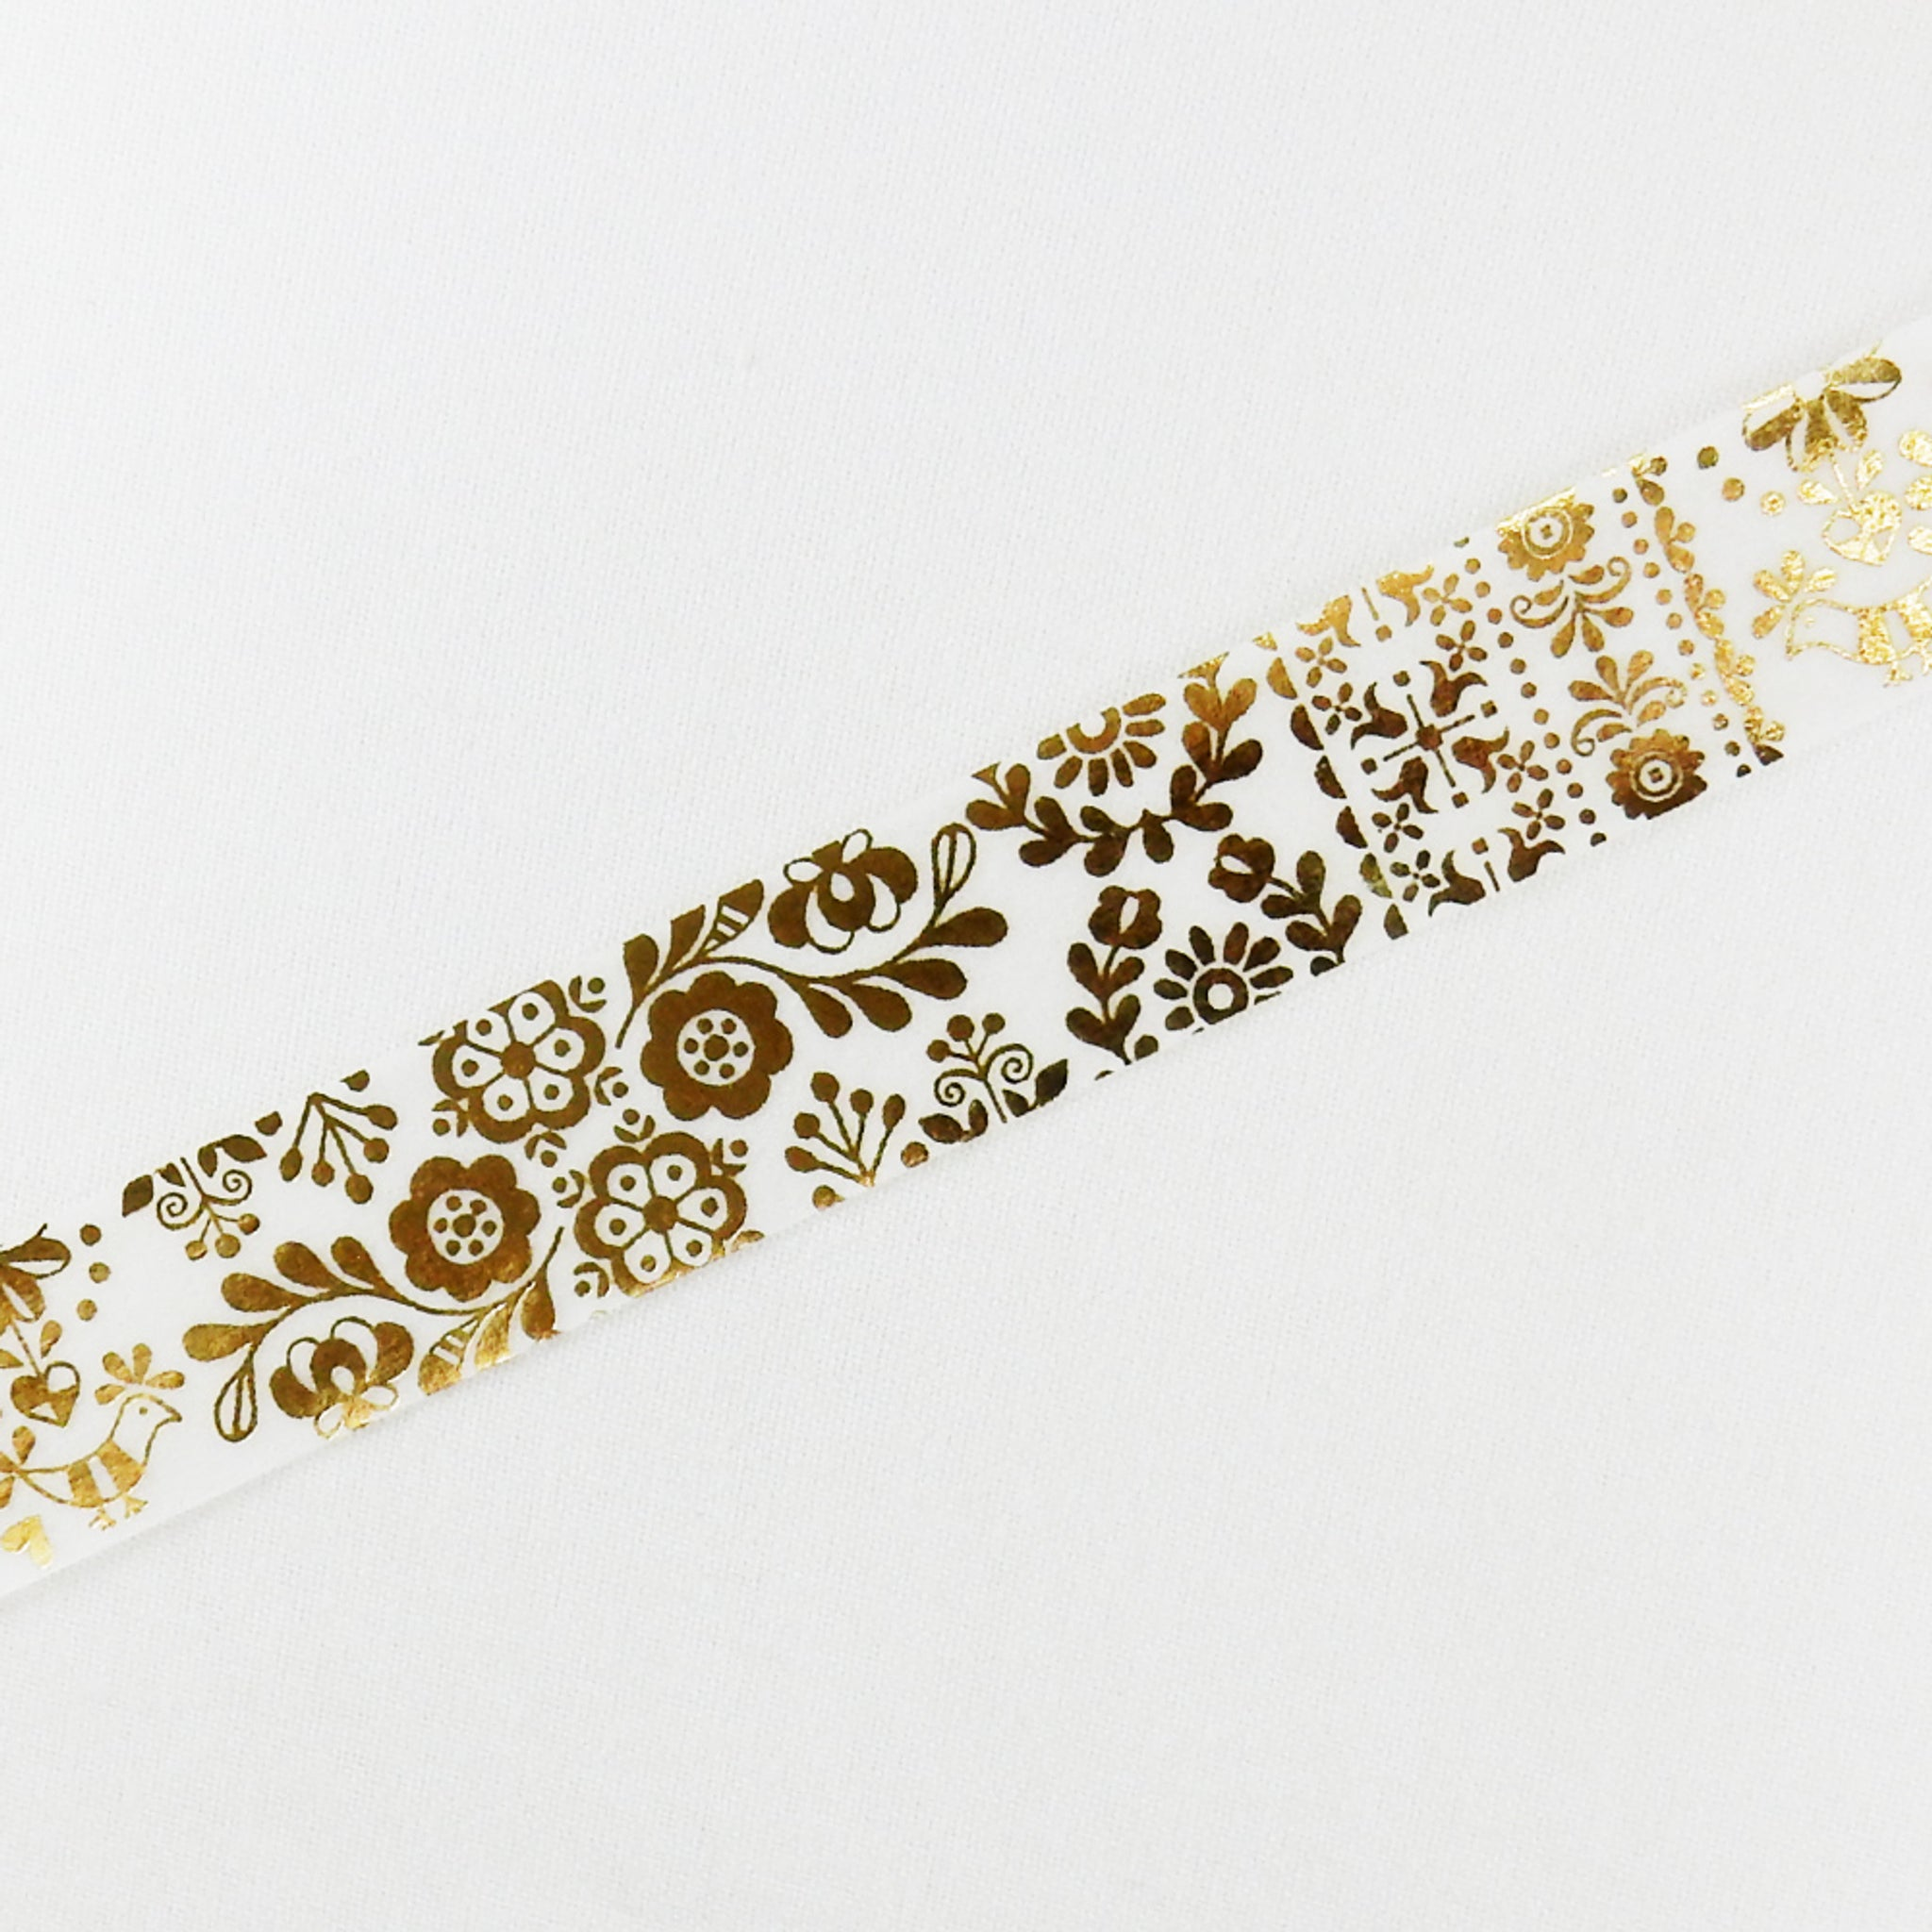 Round Top x Material Michemon Hungarian Motif (Gold Leaf) Washi Tape